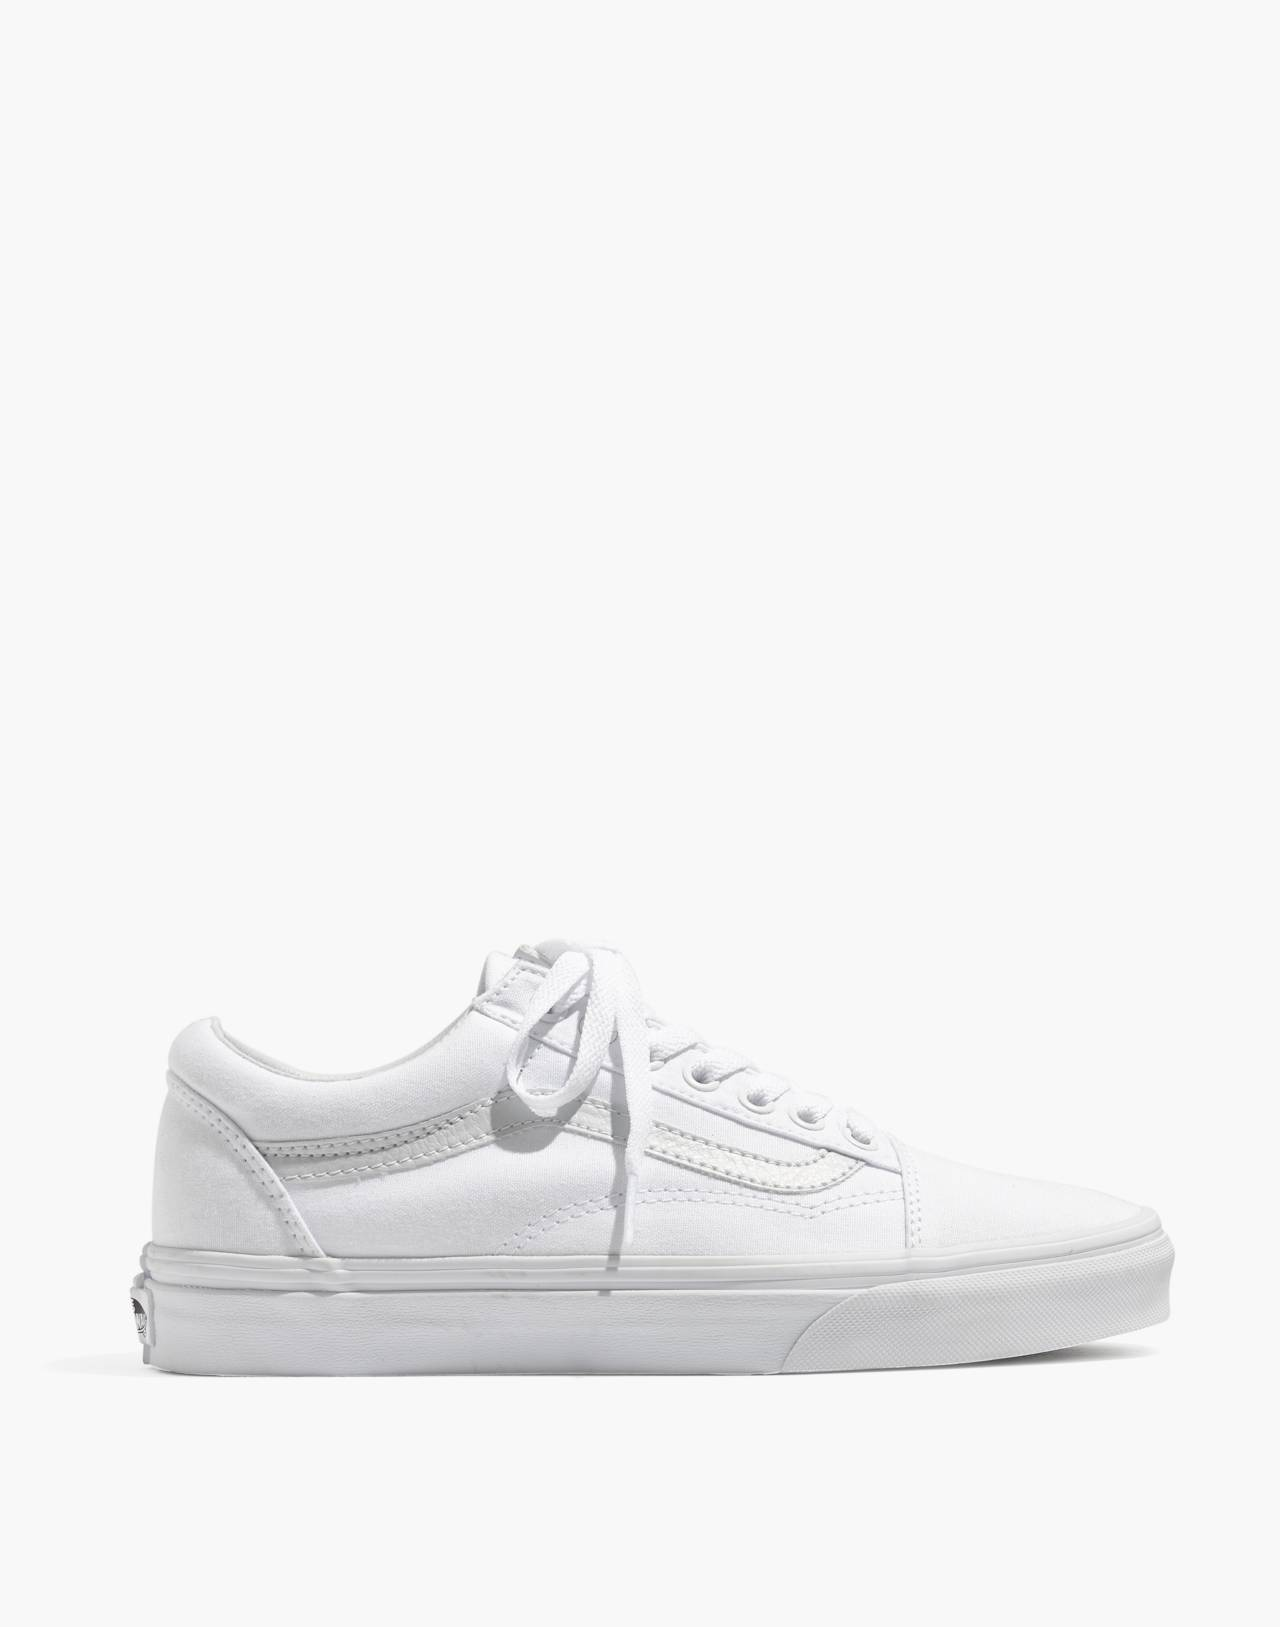 Vans® Unisex Old Skool Lace-Up Sneakers in Canvas and Suede in true white image 3